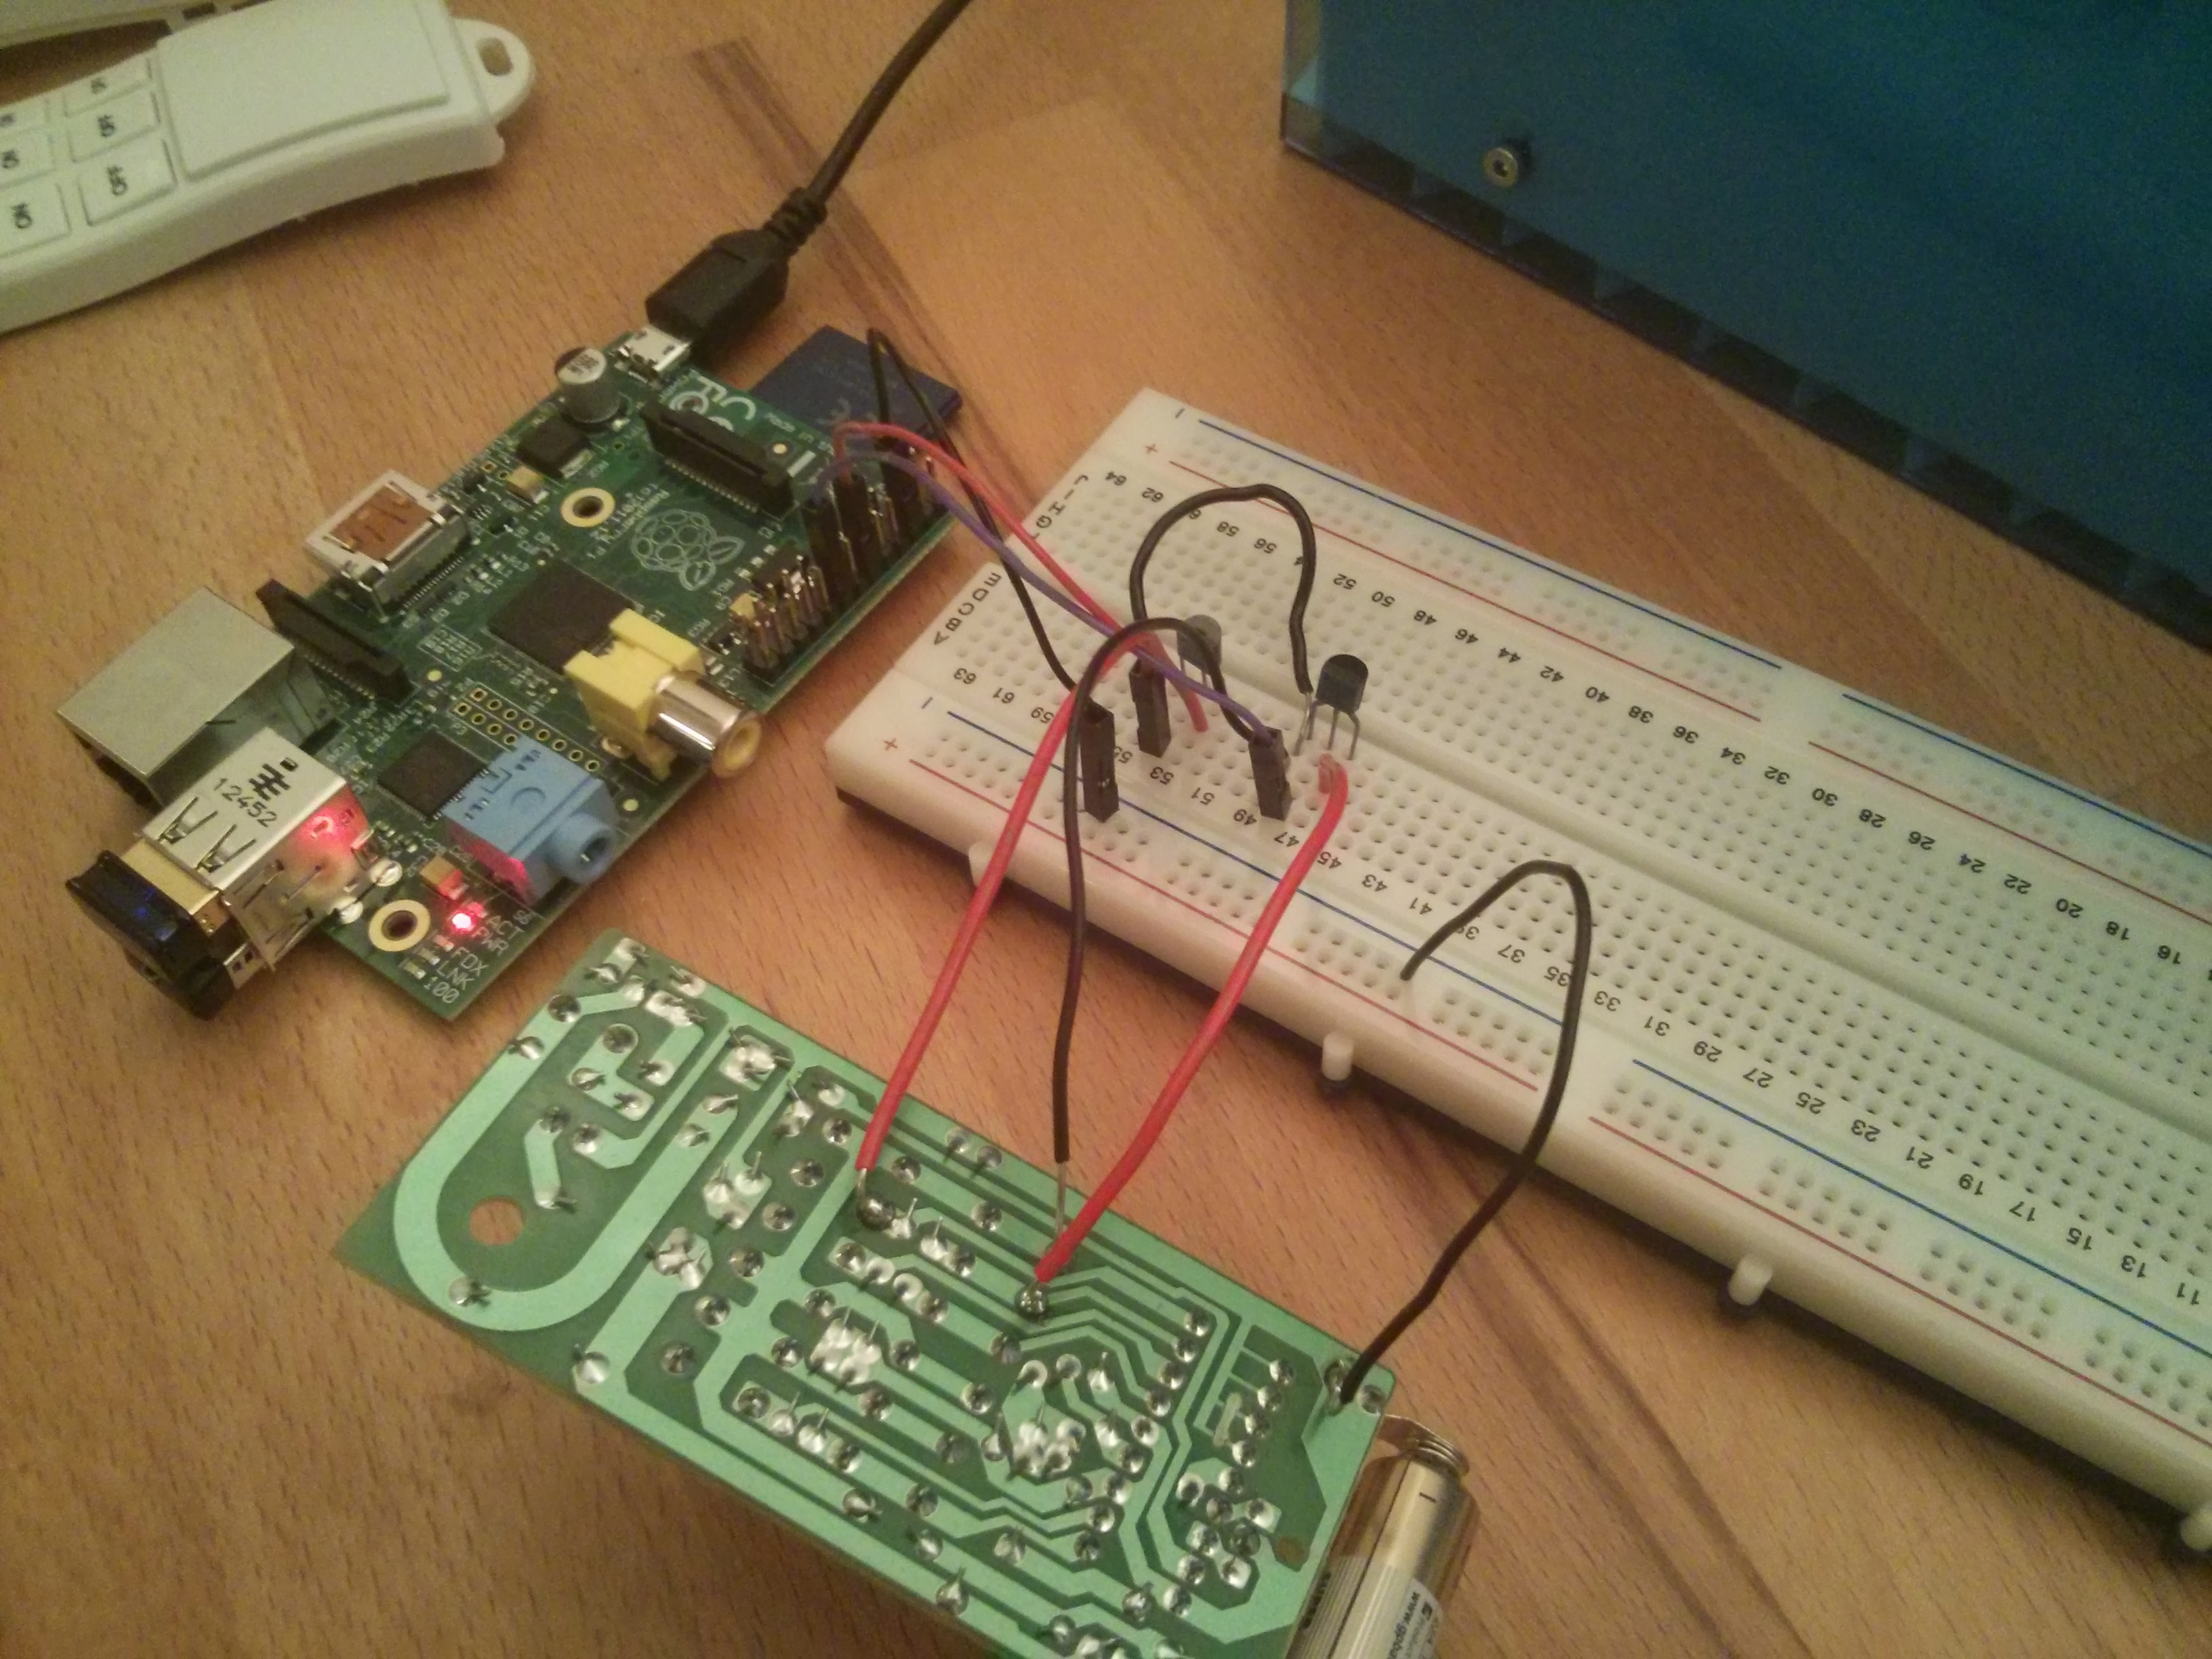 Make an Internet Controlled Lamp with a Raspberry Pi and Flask